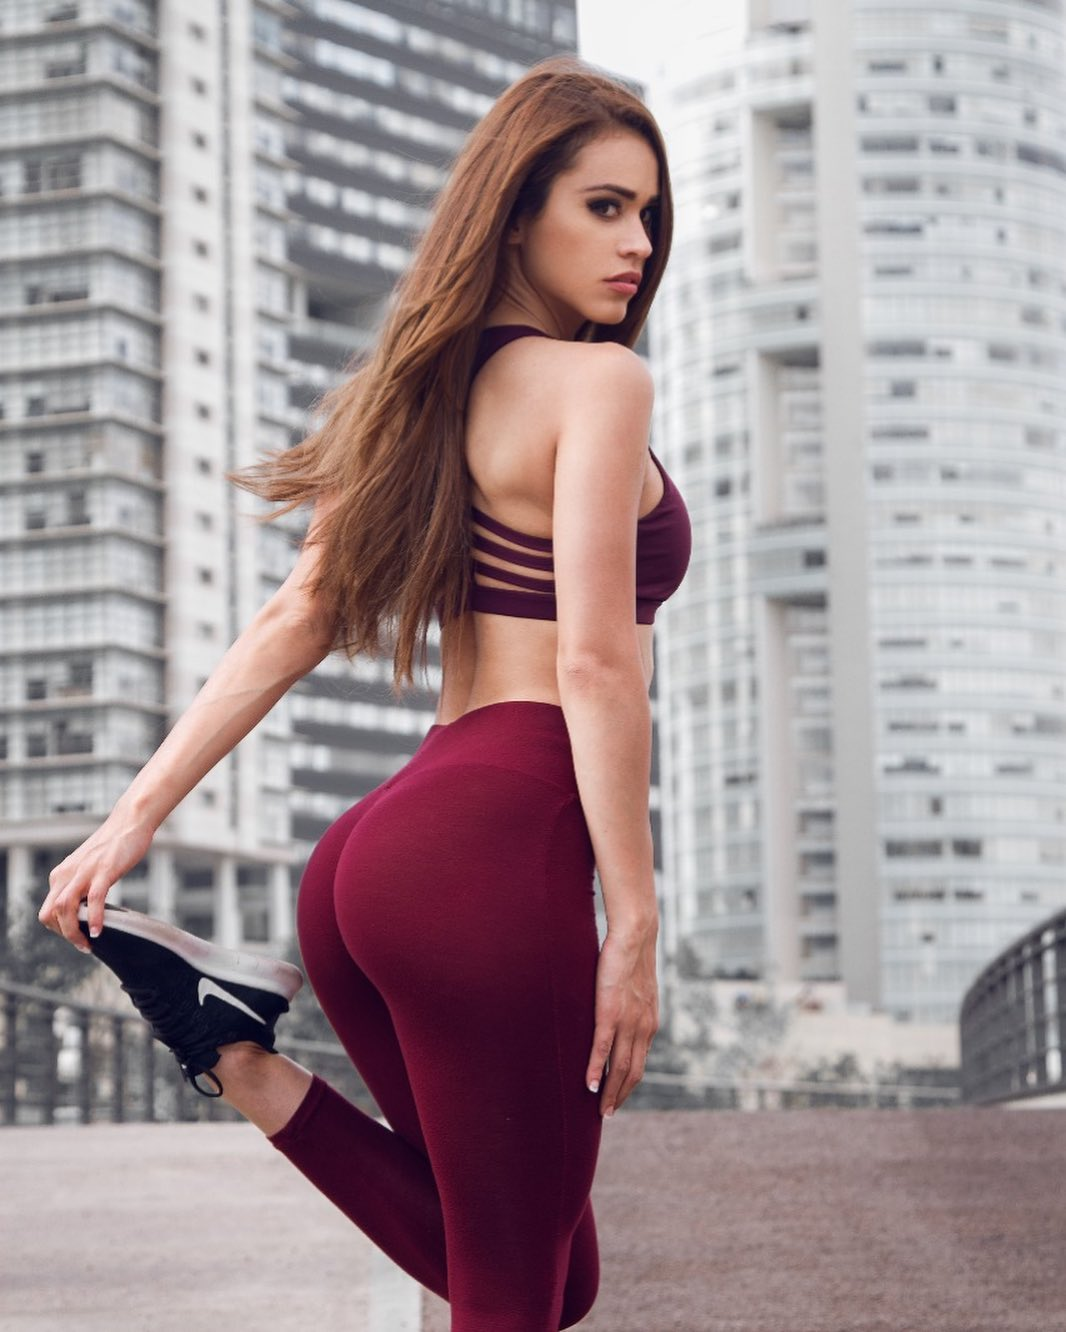 Yanet-Garcia-Wallpapers-Insta-Fit-Bio-2